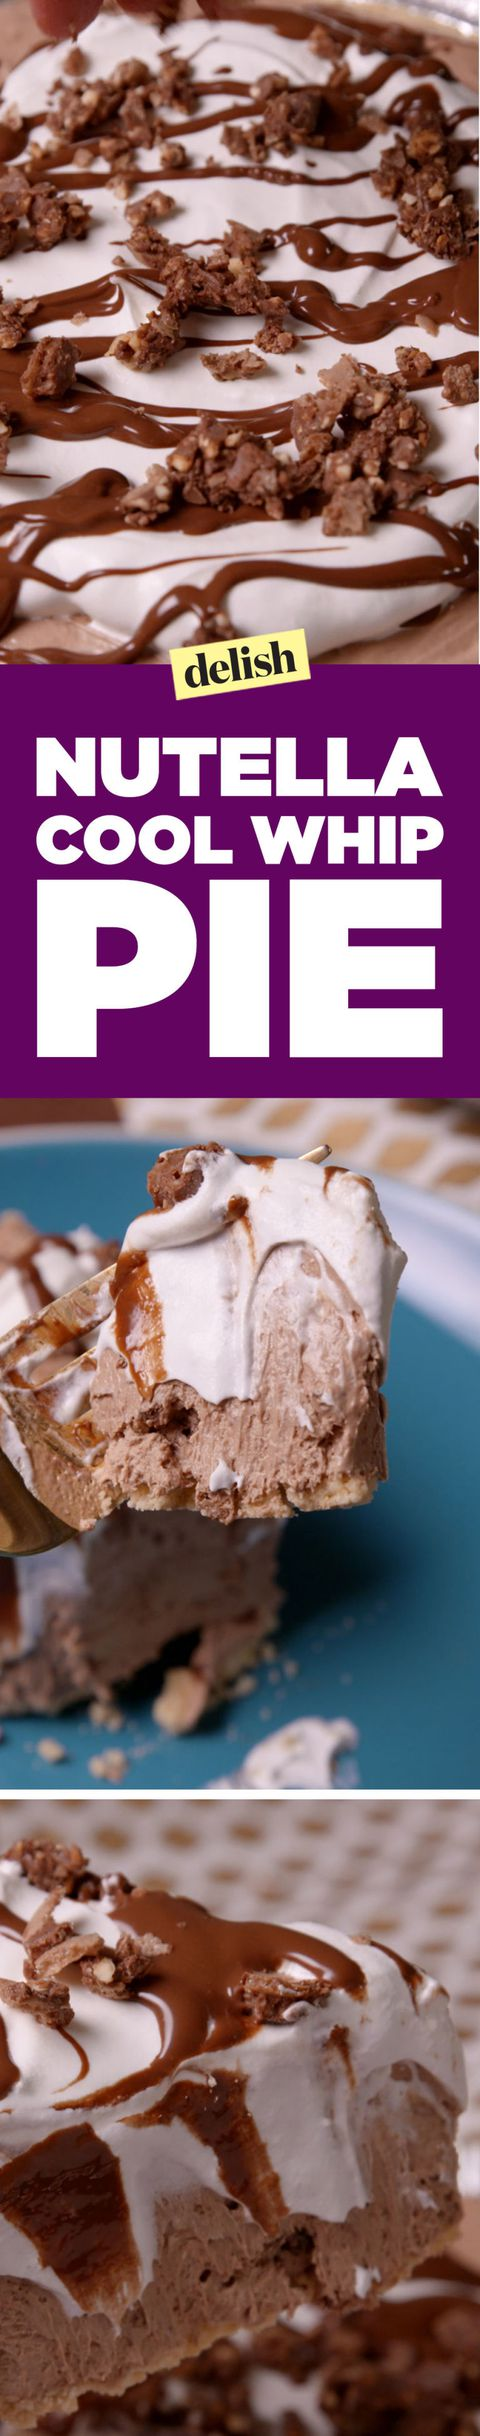 Nutella Cool Whip Pie Pinterest